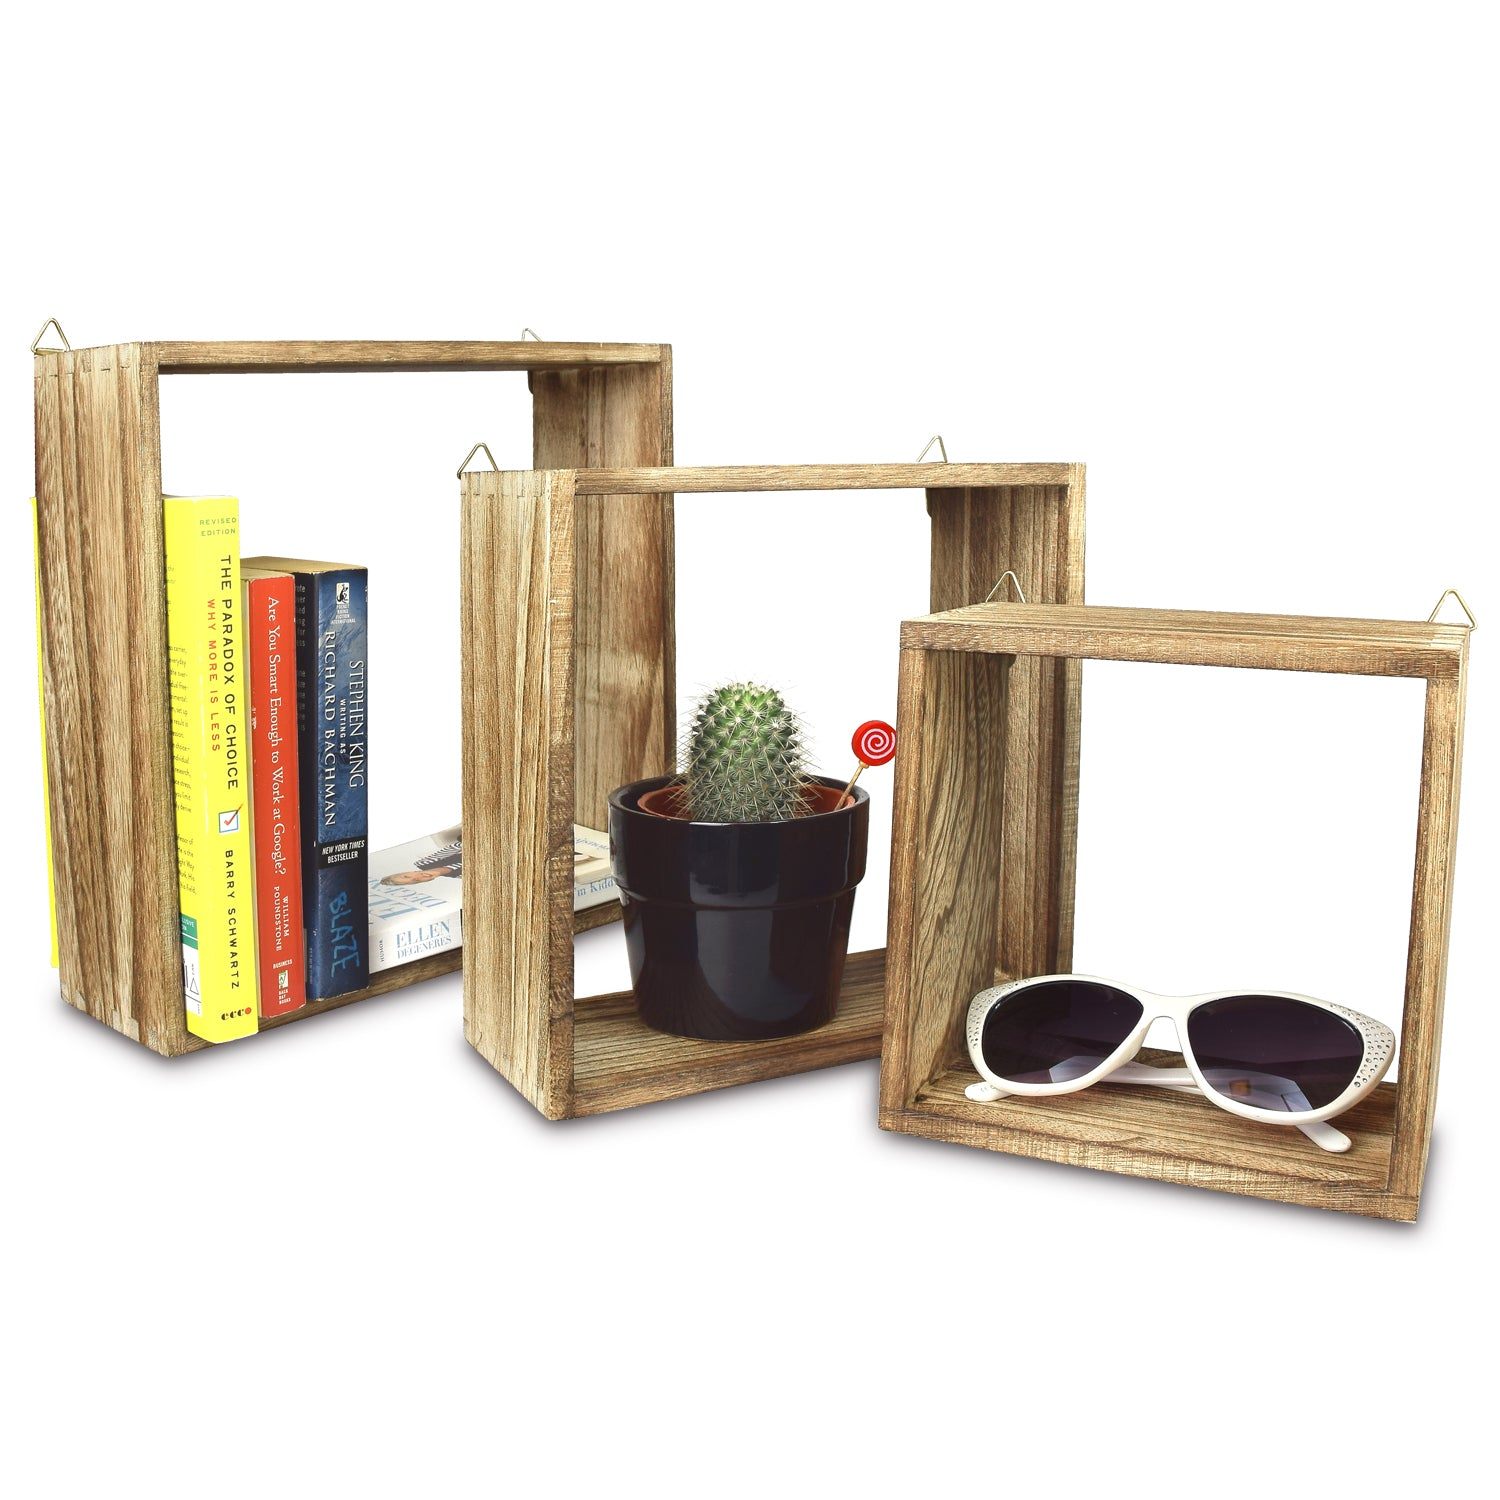 ... Ikee Design® Wooden Square Wall Mounted Floating Display Shelves, Set  Of 3 ...